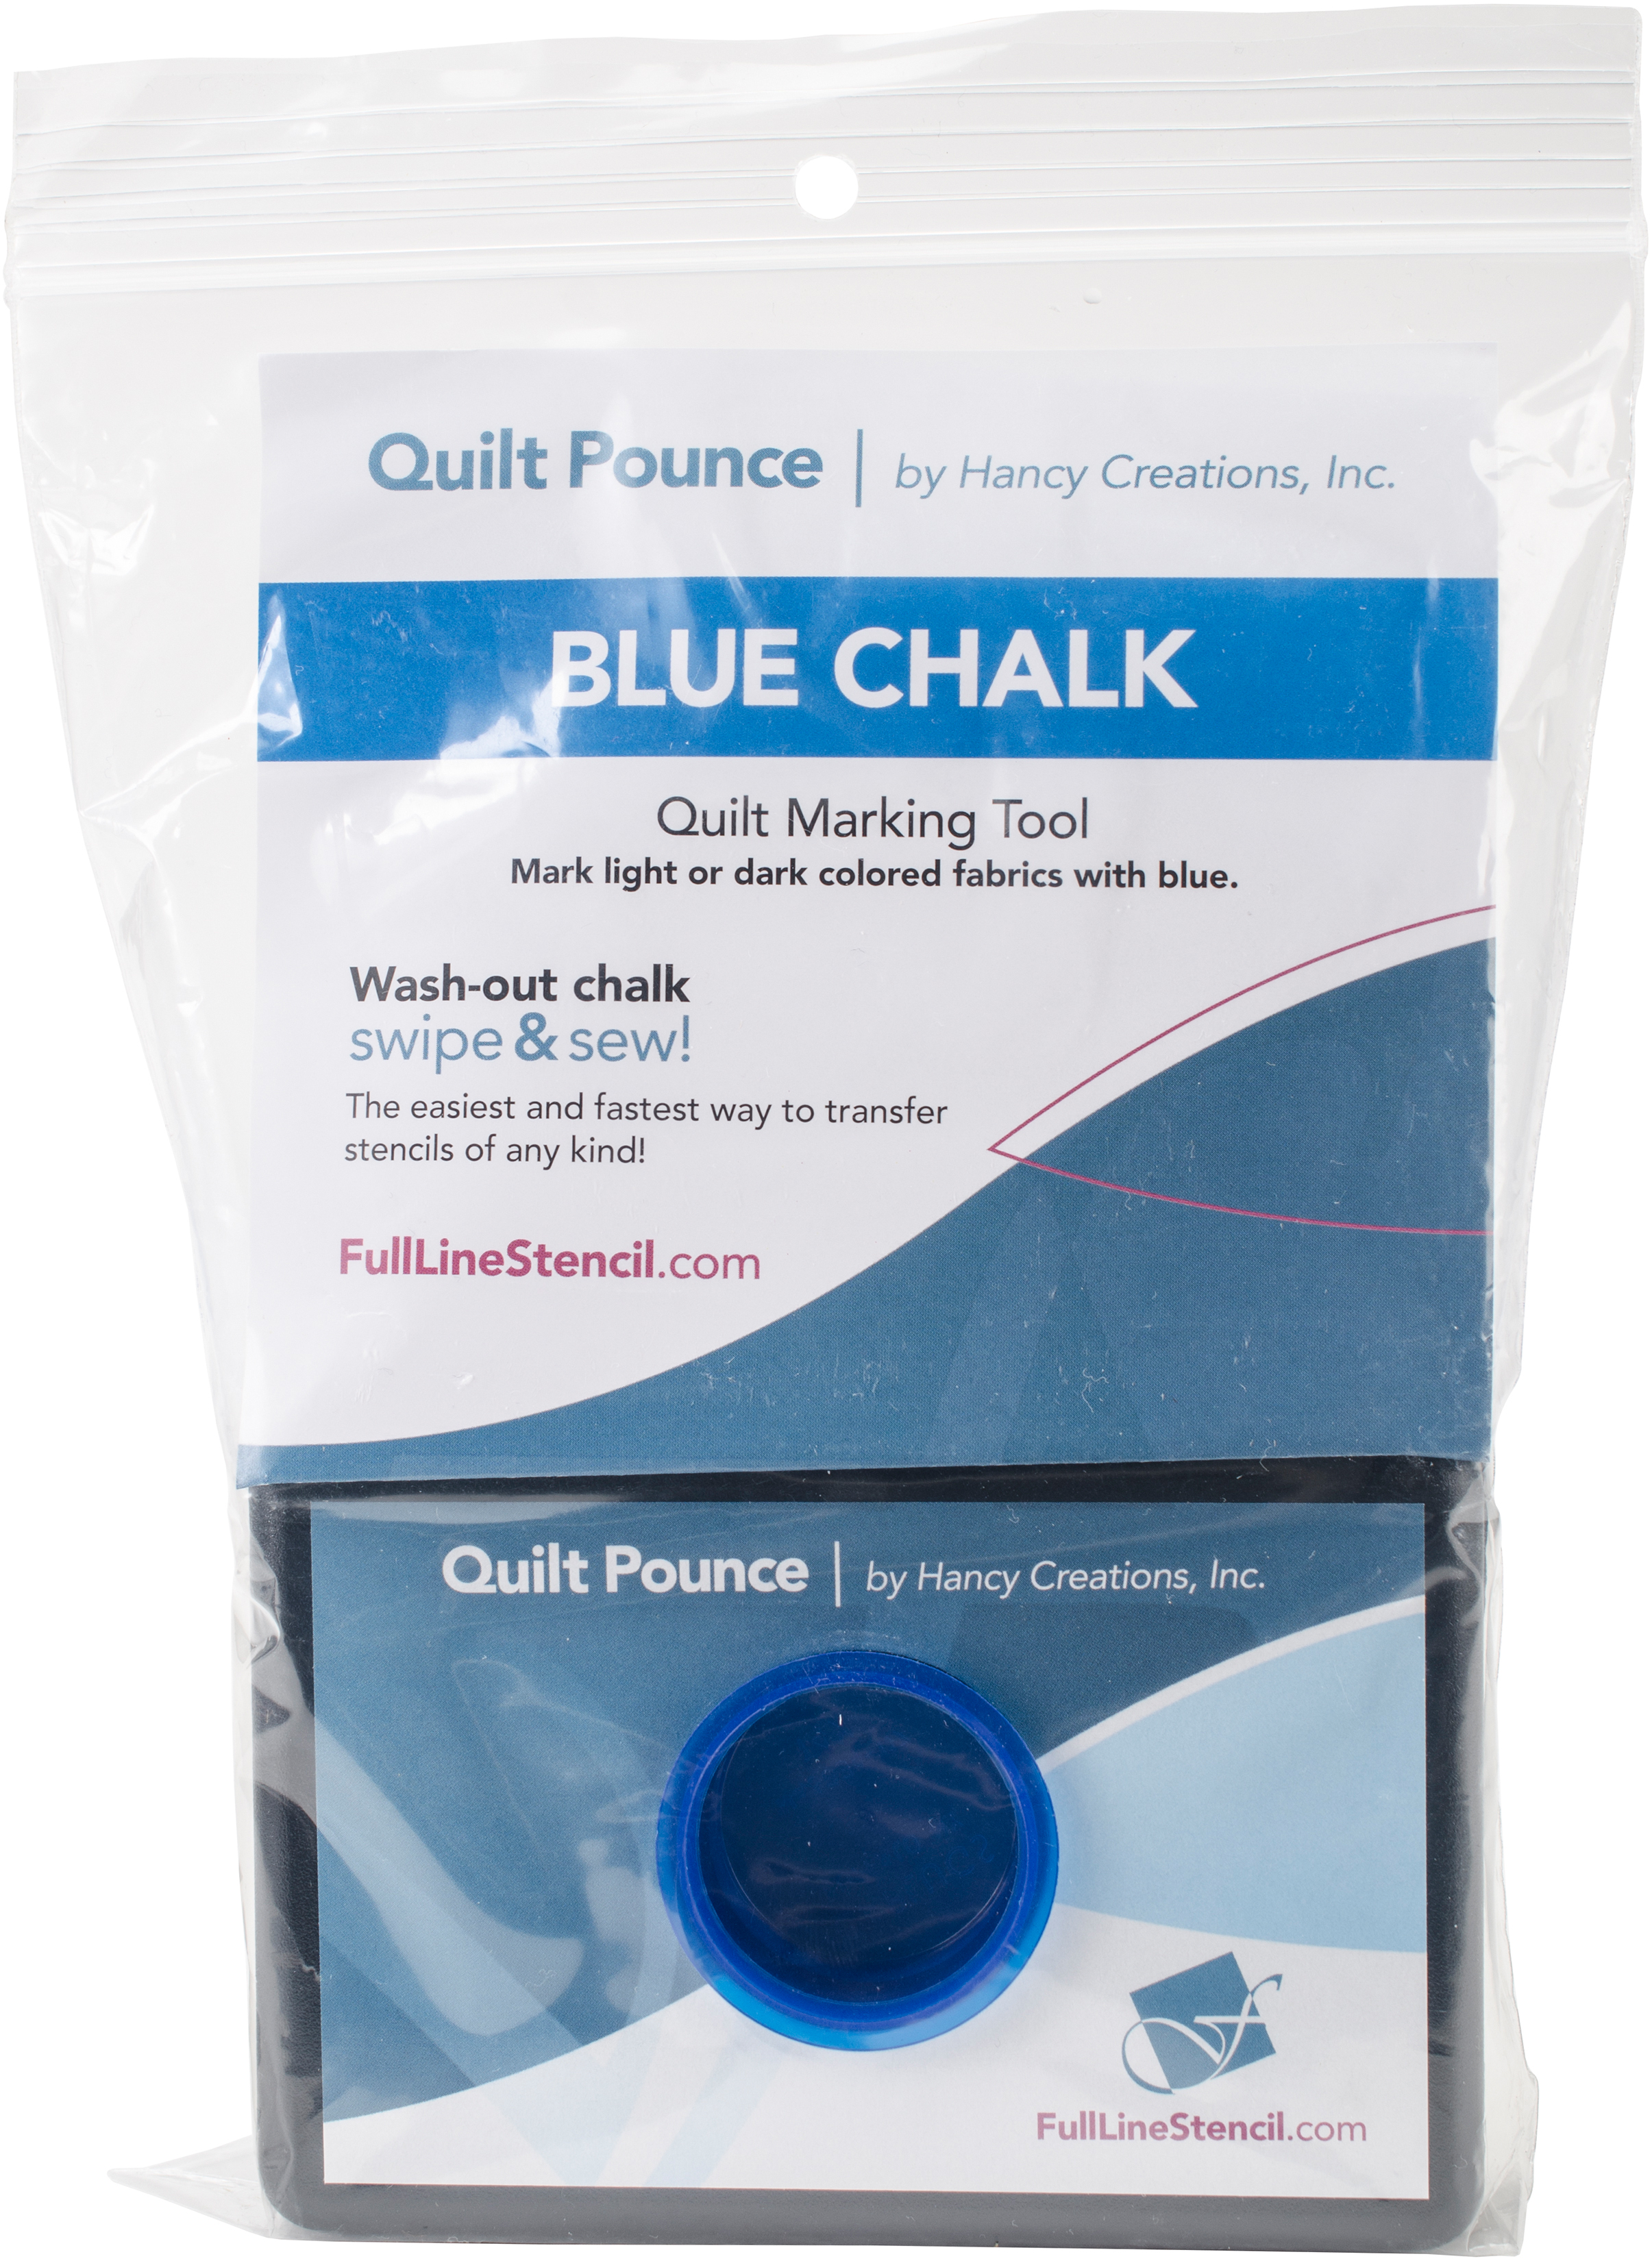 White Hancy 4-Ounce Quilt Pounce Pad with Chalk Powder